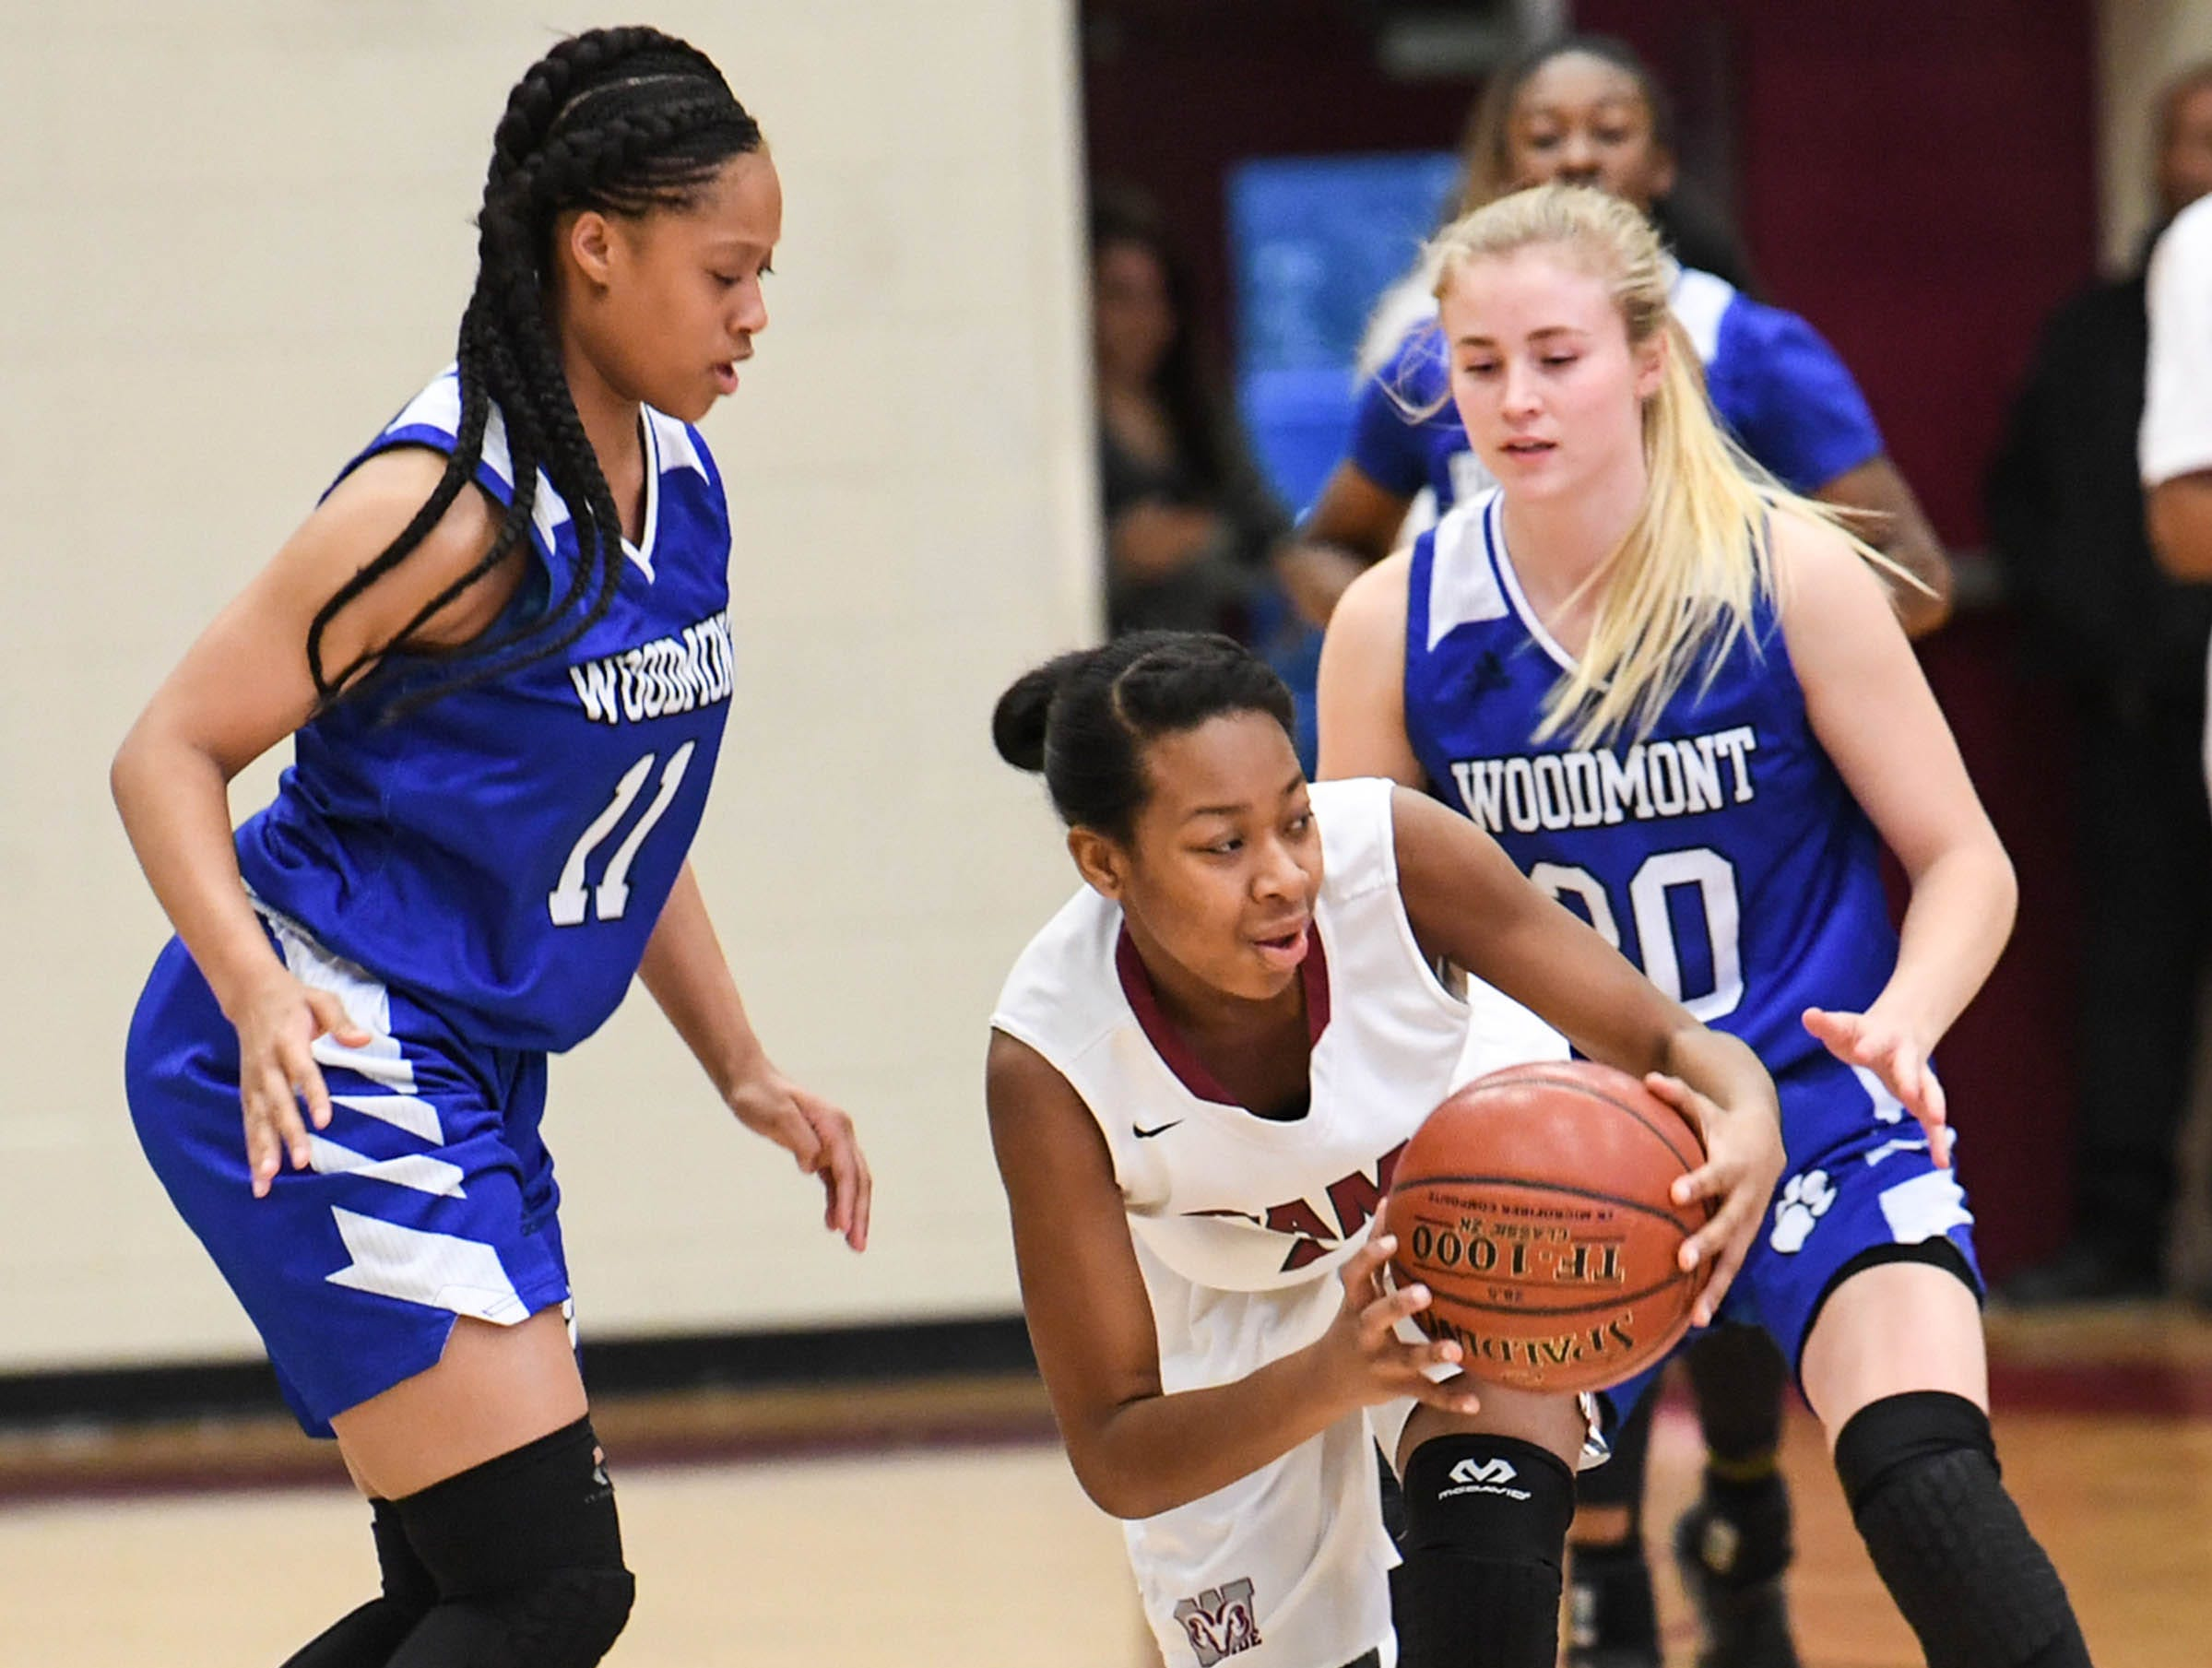 Woodmont senior Xan Rowland(20), right, and Kitara Henry(33) pressure Westside senior Chelsea Adger (5), middle, during the first quarter at Westside High School in Anderson on Tuesday.